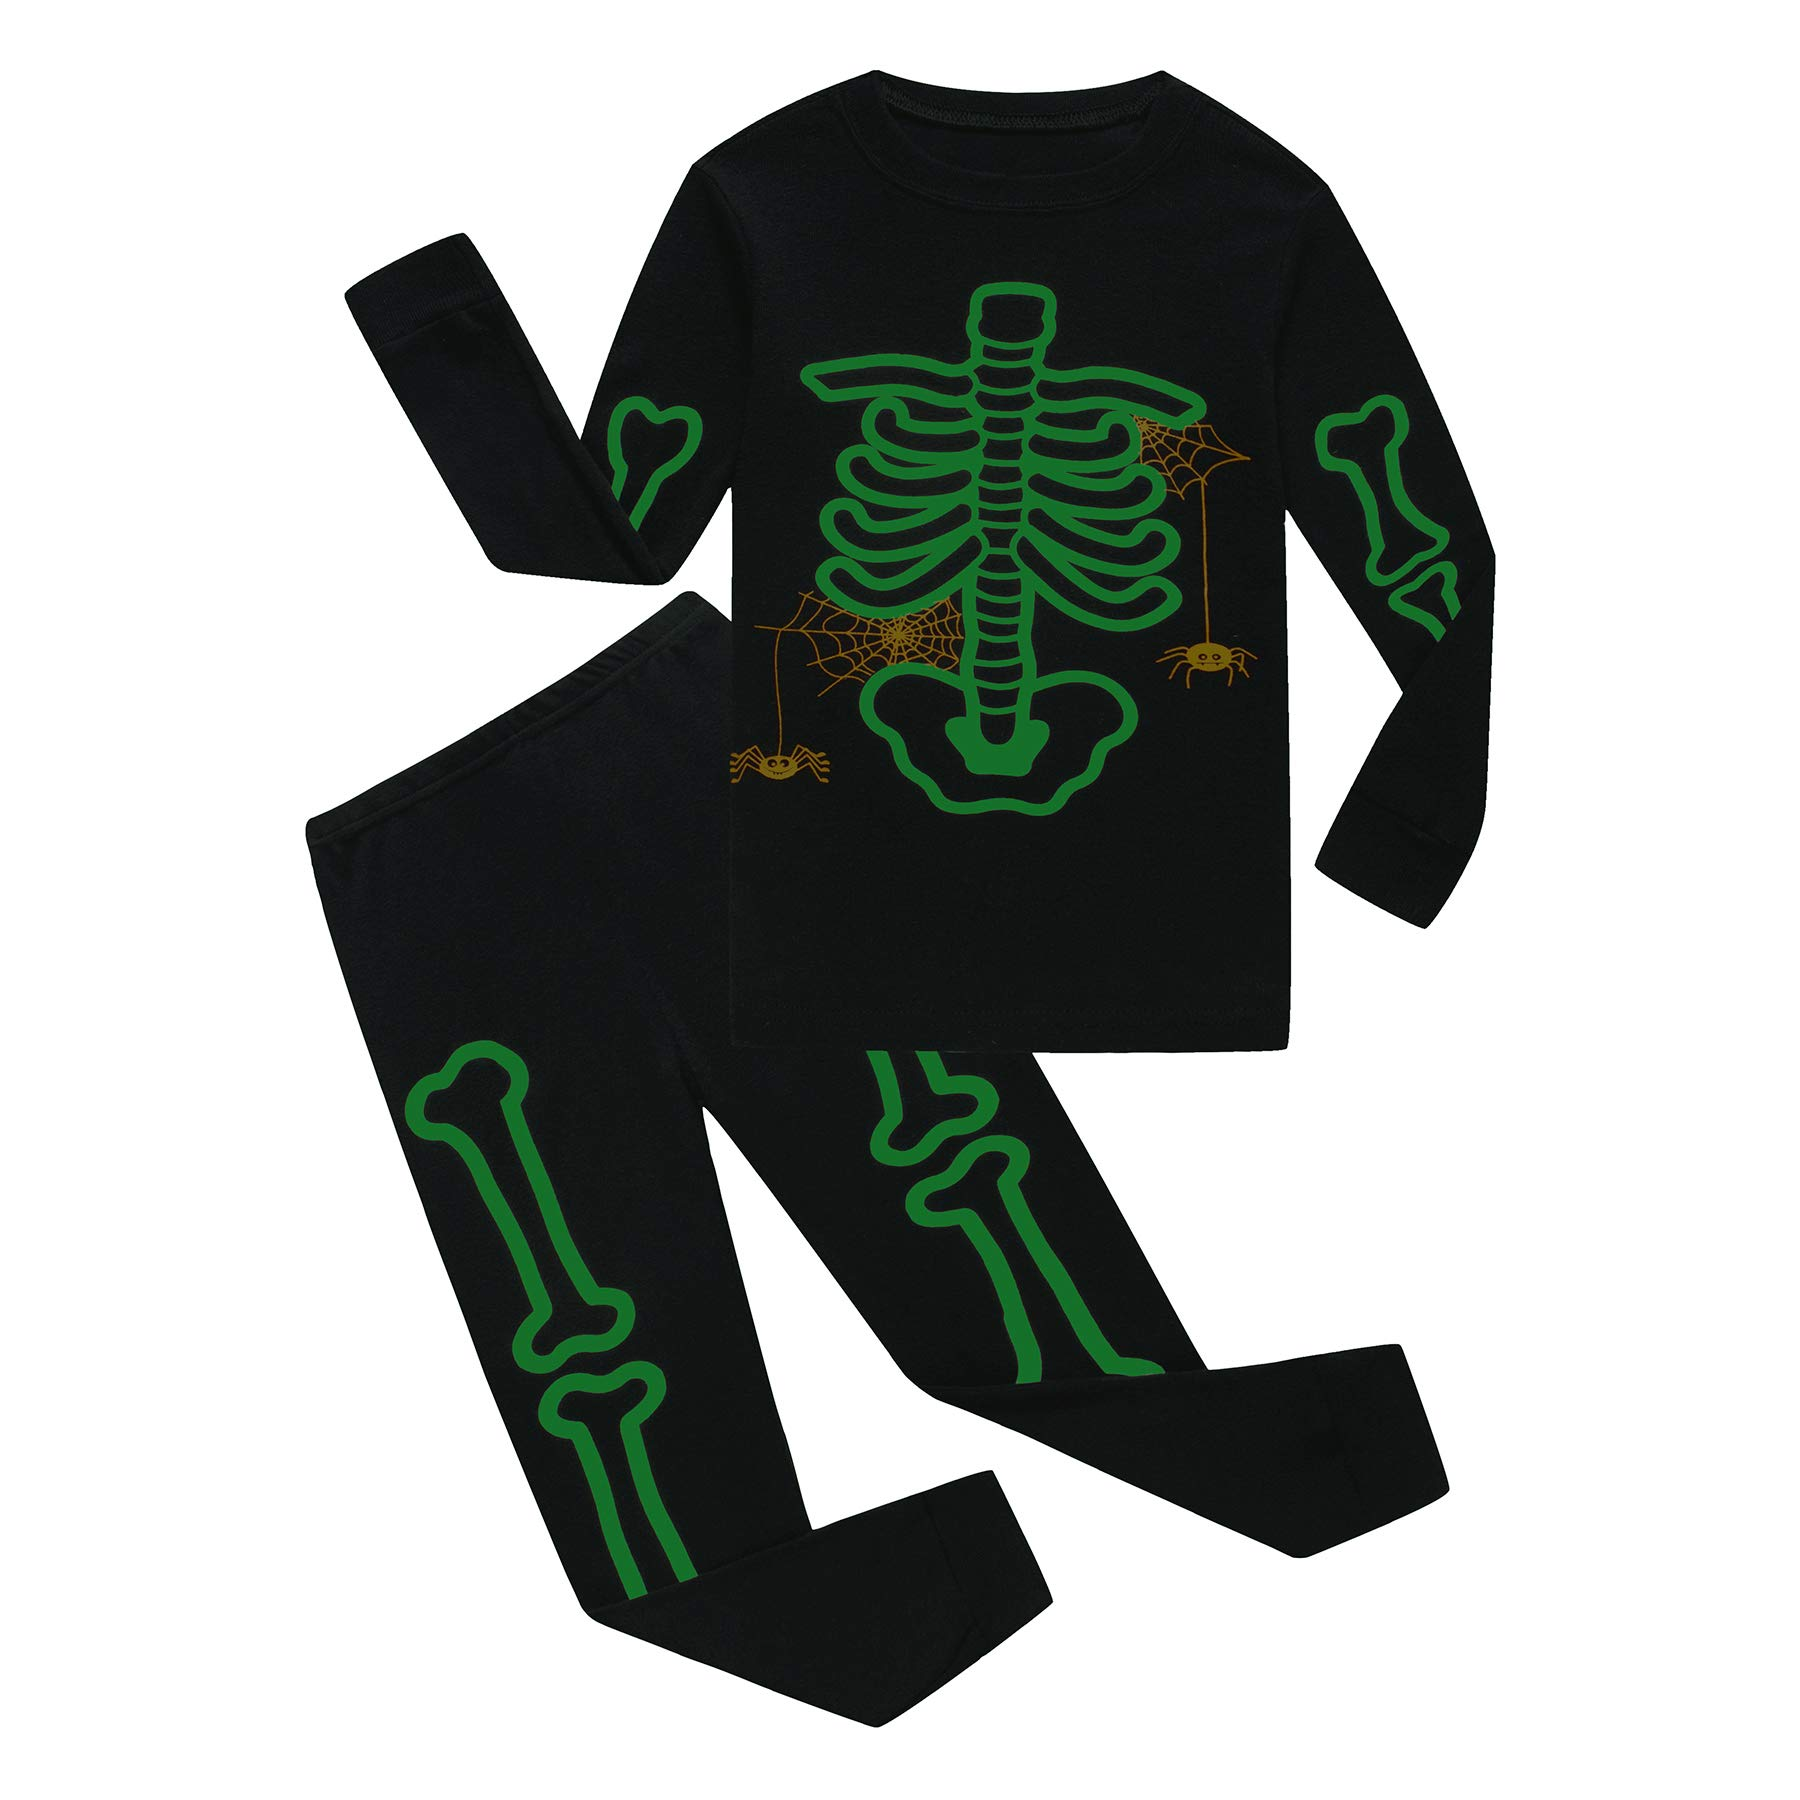 Family Feeling Halloween Skeleton Little Boys Girls Pajamas Sets 100% Cotton Clothes Costumes Toddler Kids Pjs Size 5 by Family Feeling (Image #3)